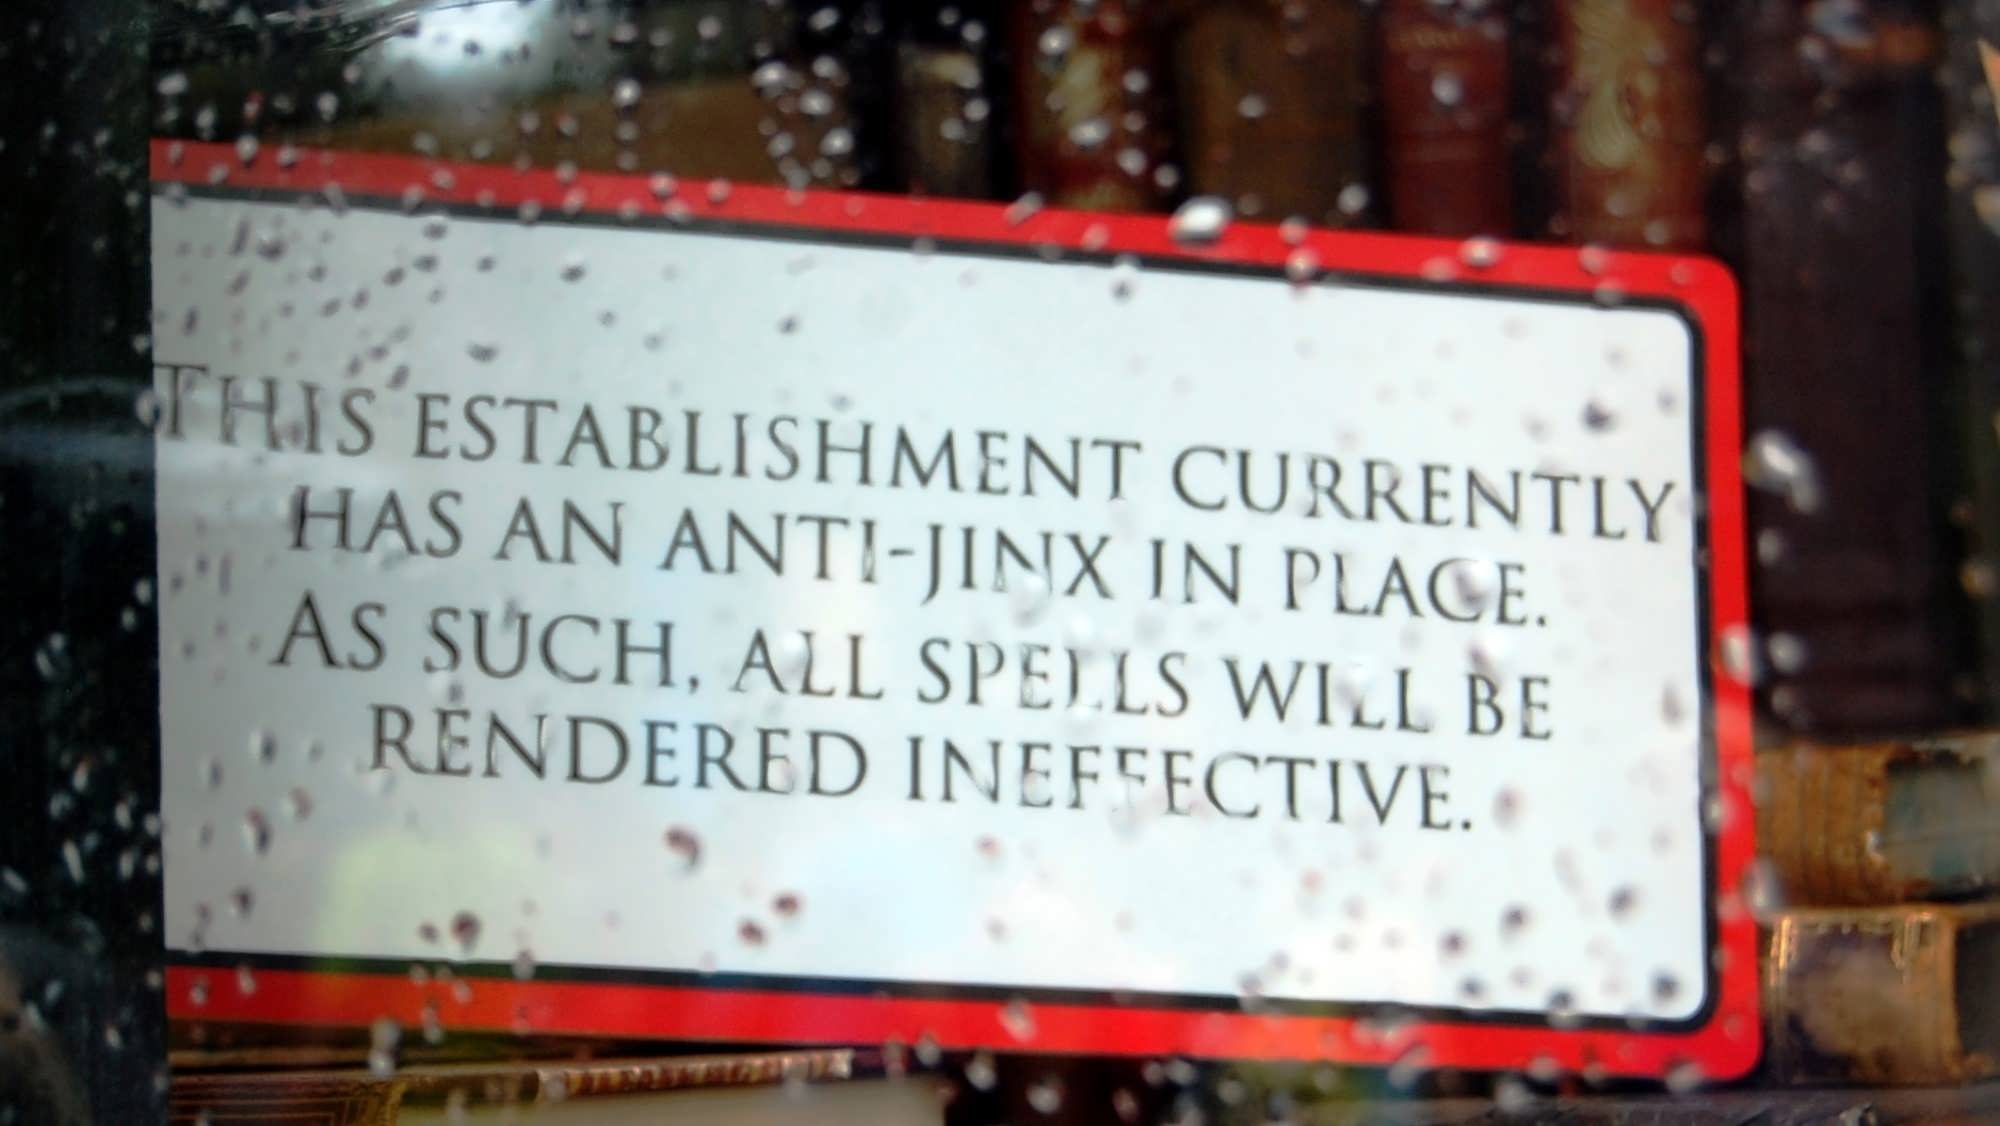 An anti-jinx sign